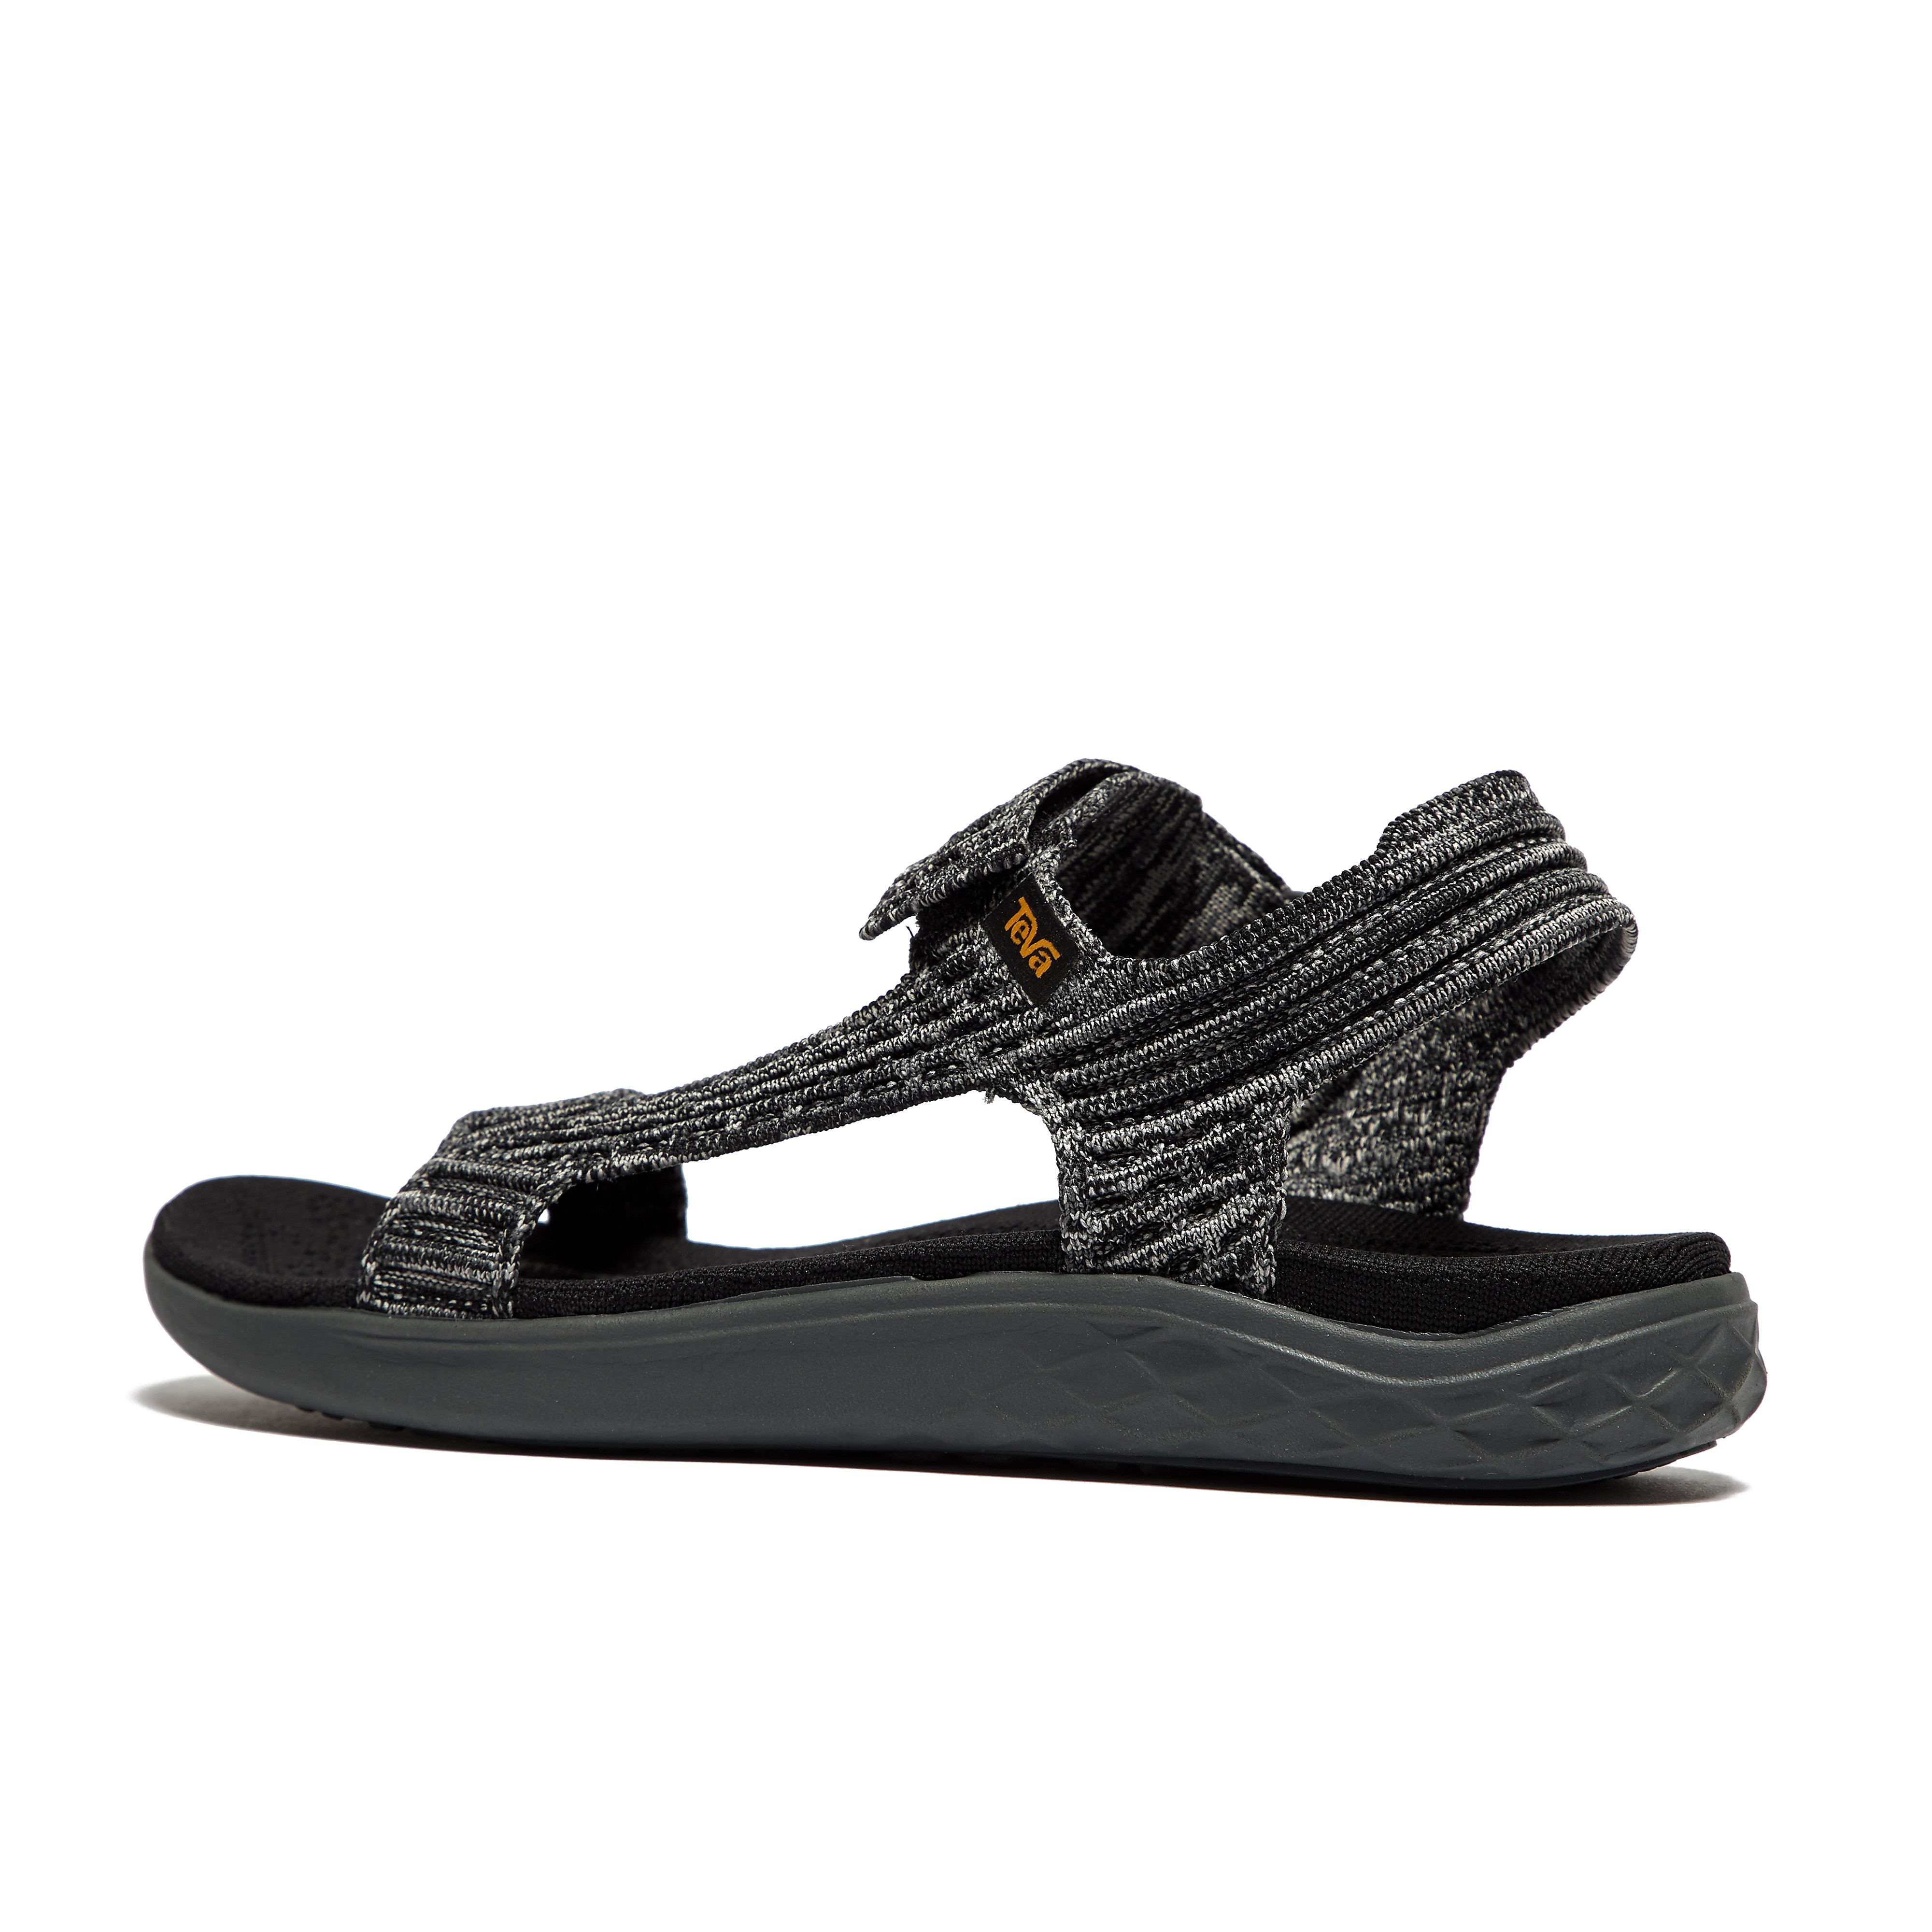 Teva Terra-Float 2 Knit Universal Women's Walking Sandal